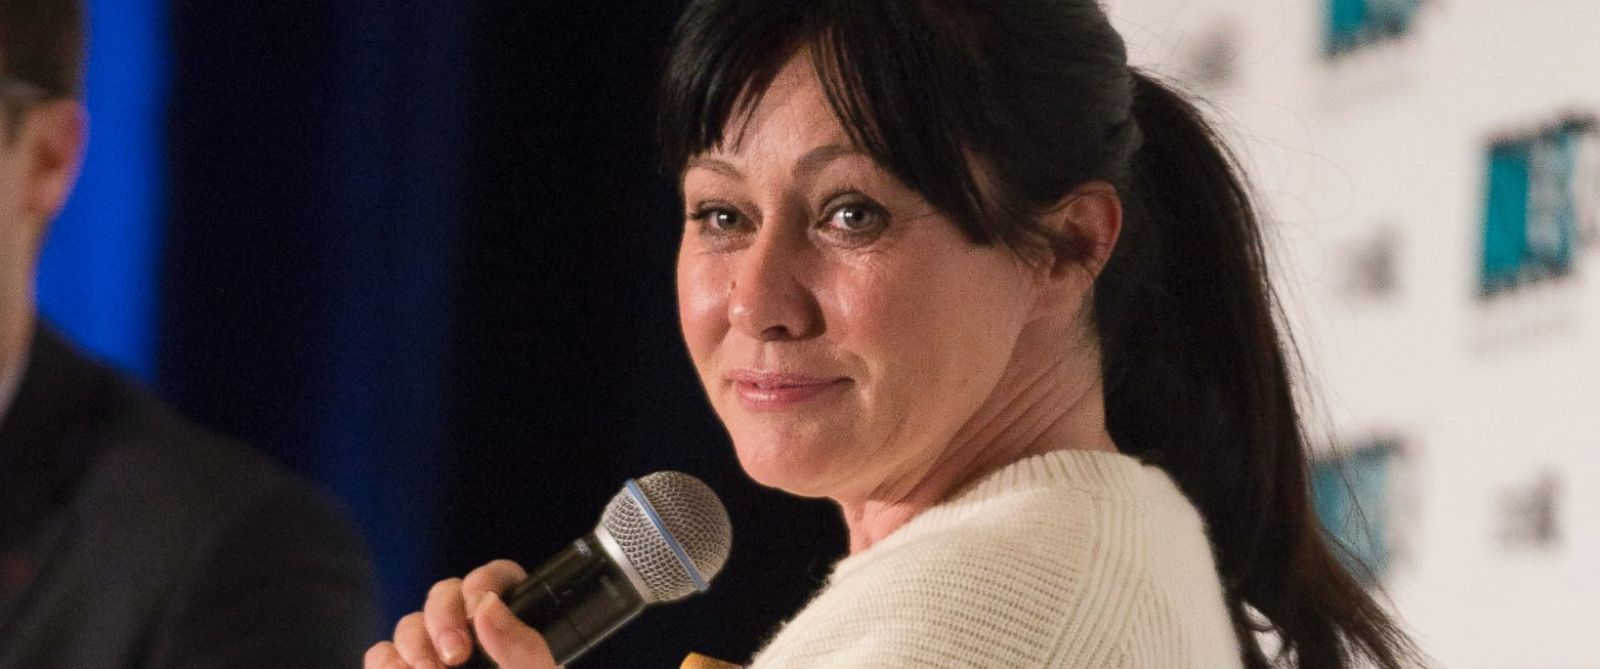 Shannen Doherty Wallpapers hd